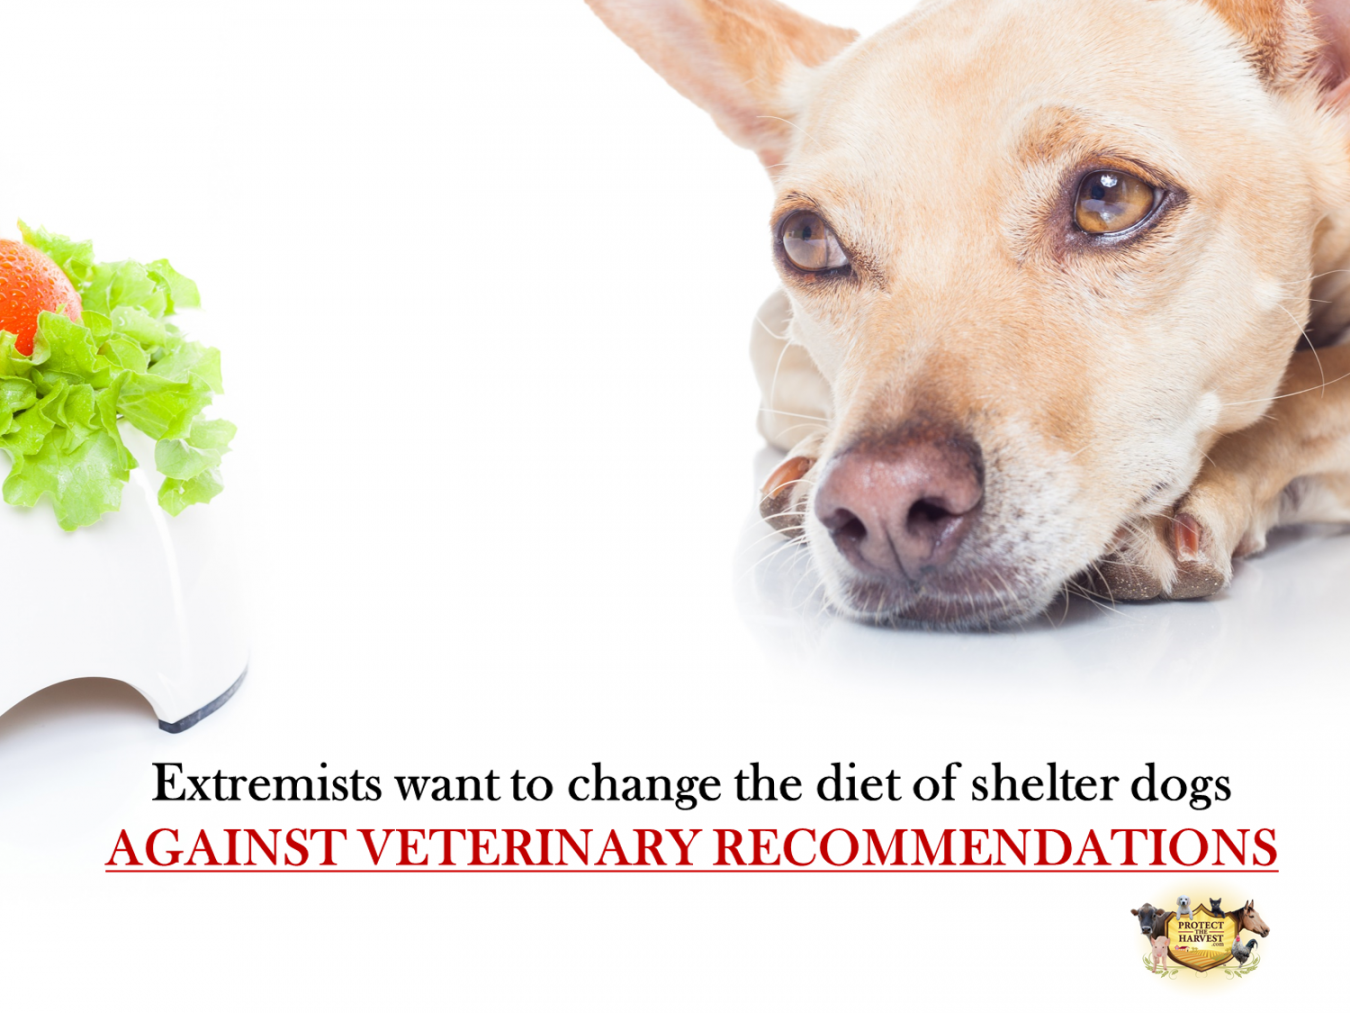 Hollywood Celebrities Push Vegan Food on LA County Shelter Dogs